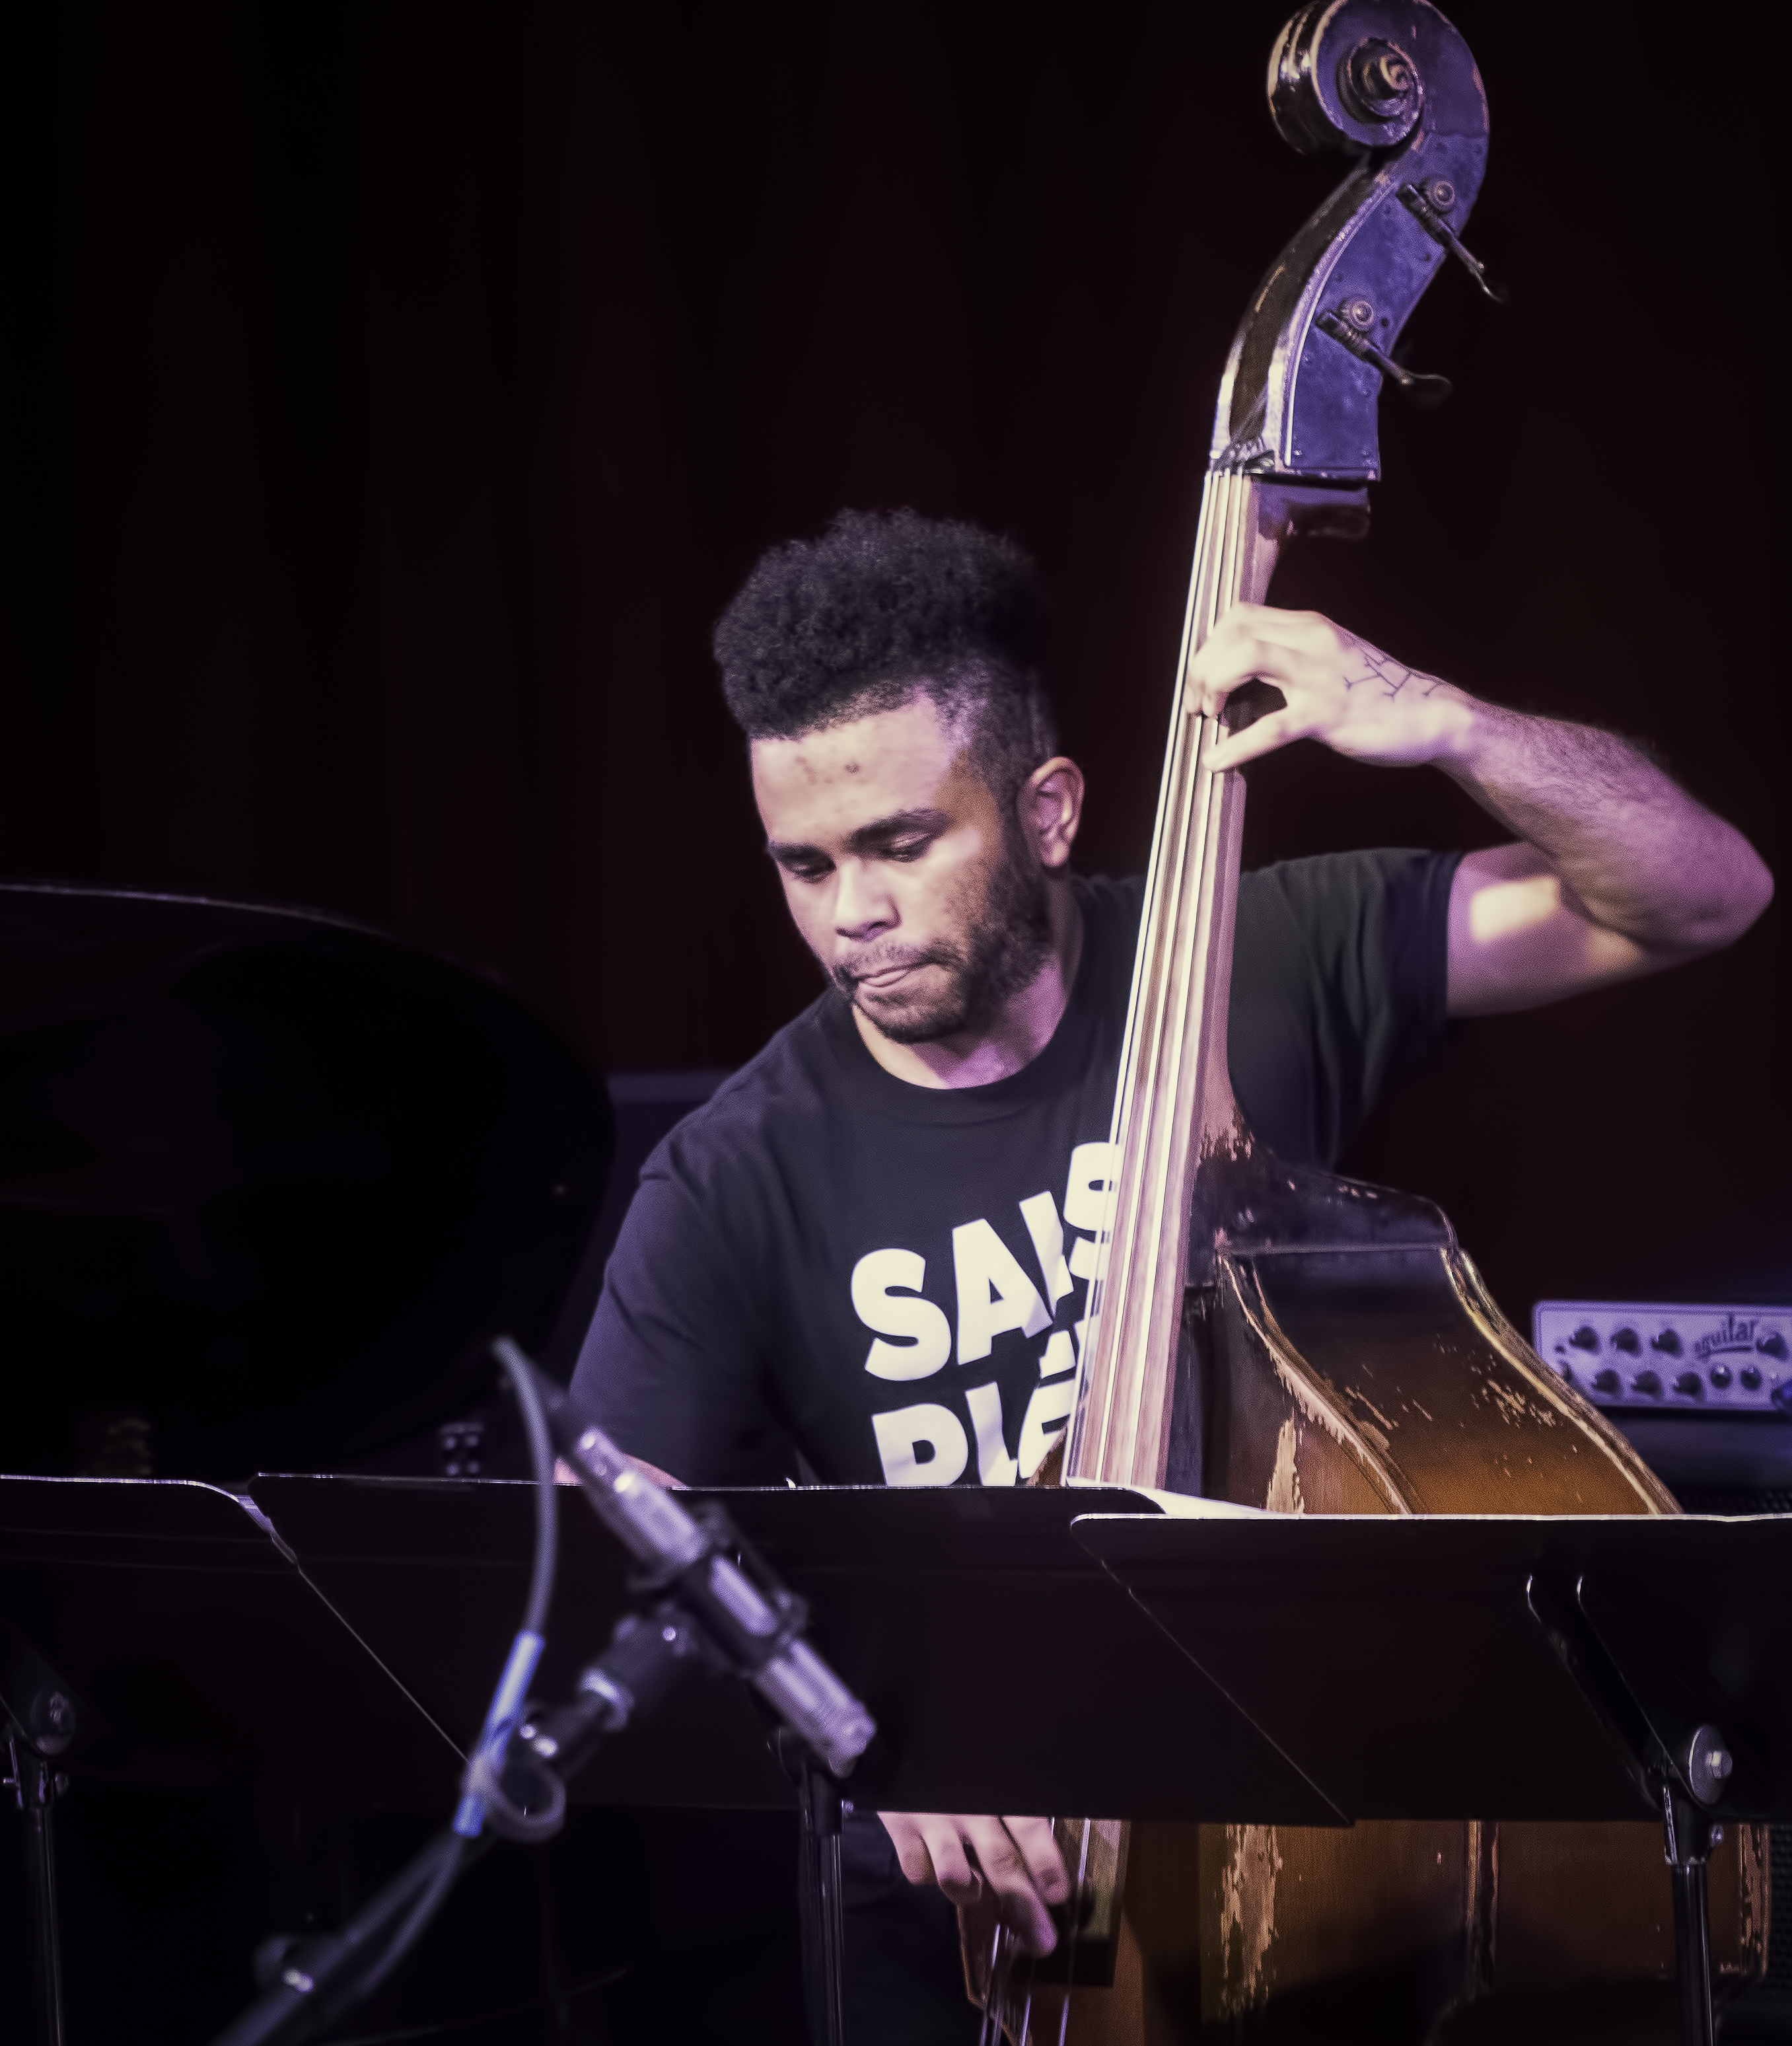 Nick Dunston with the Tyshawn Sorey Sextet at the NYC Jazz Gallery